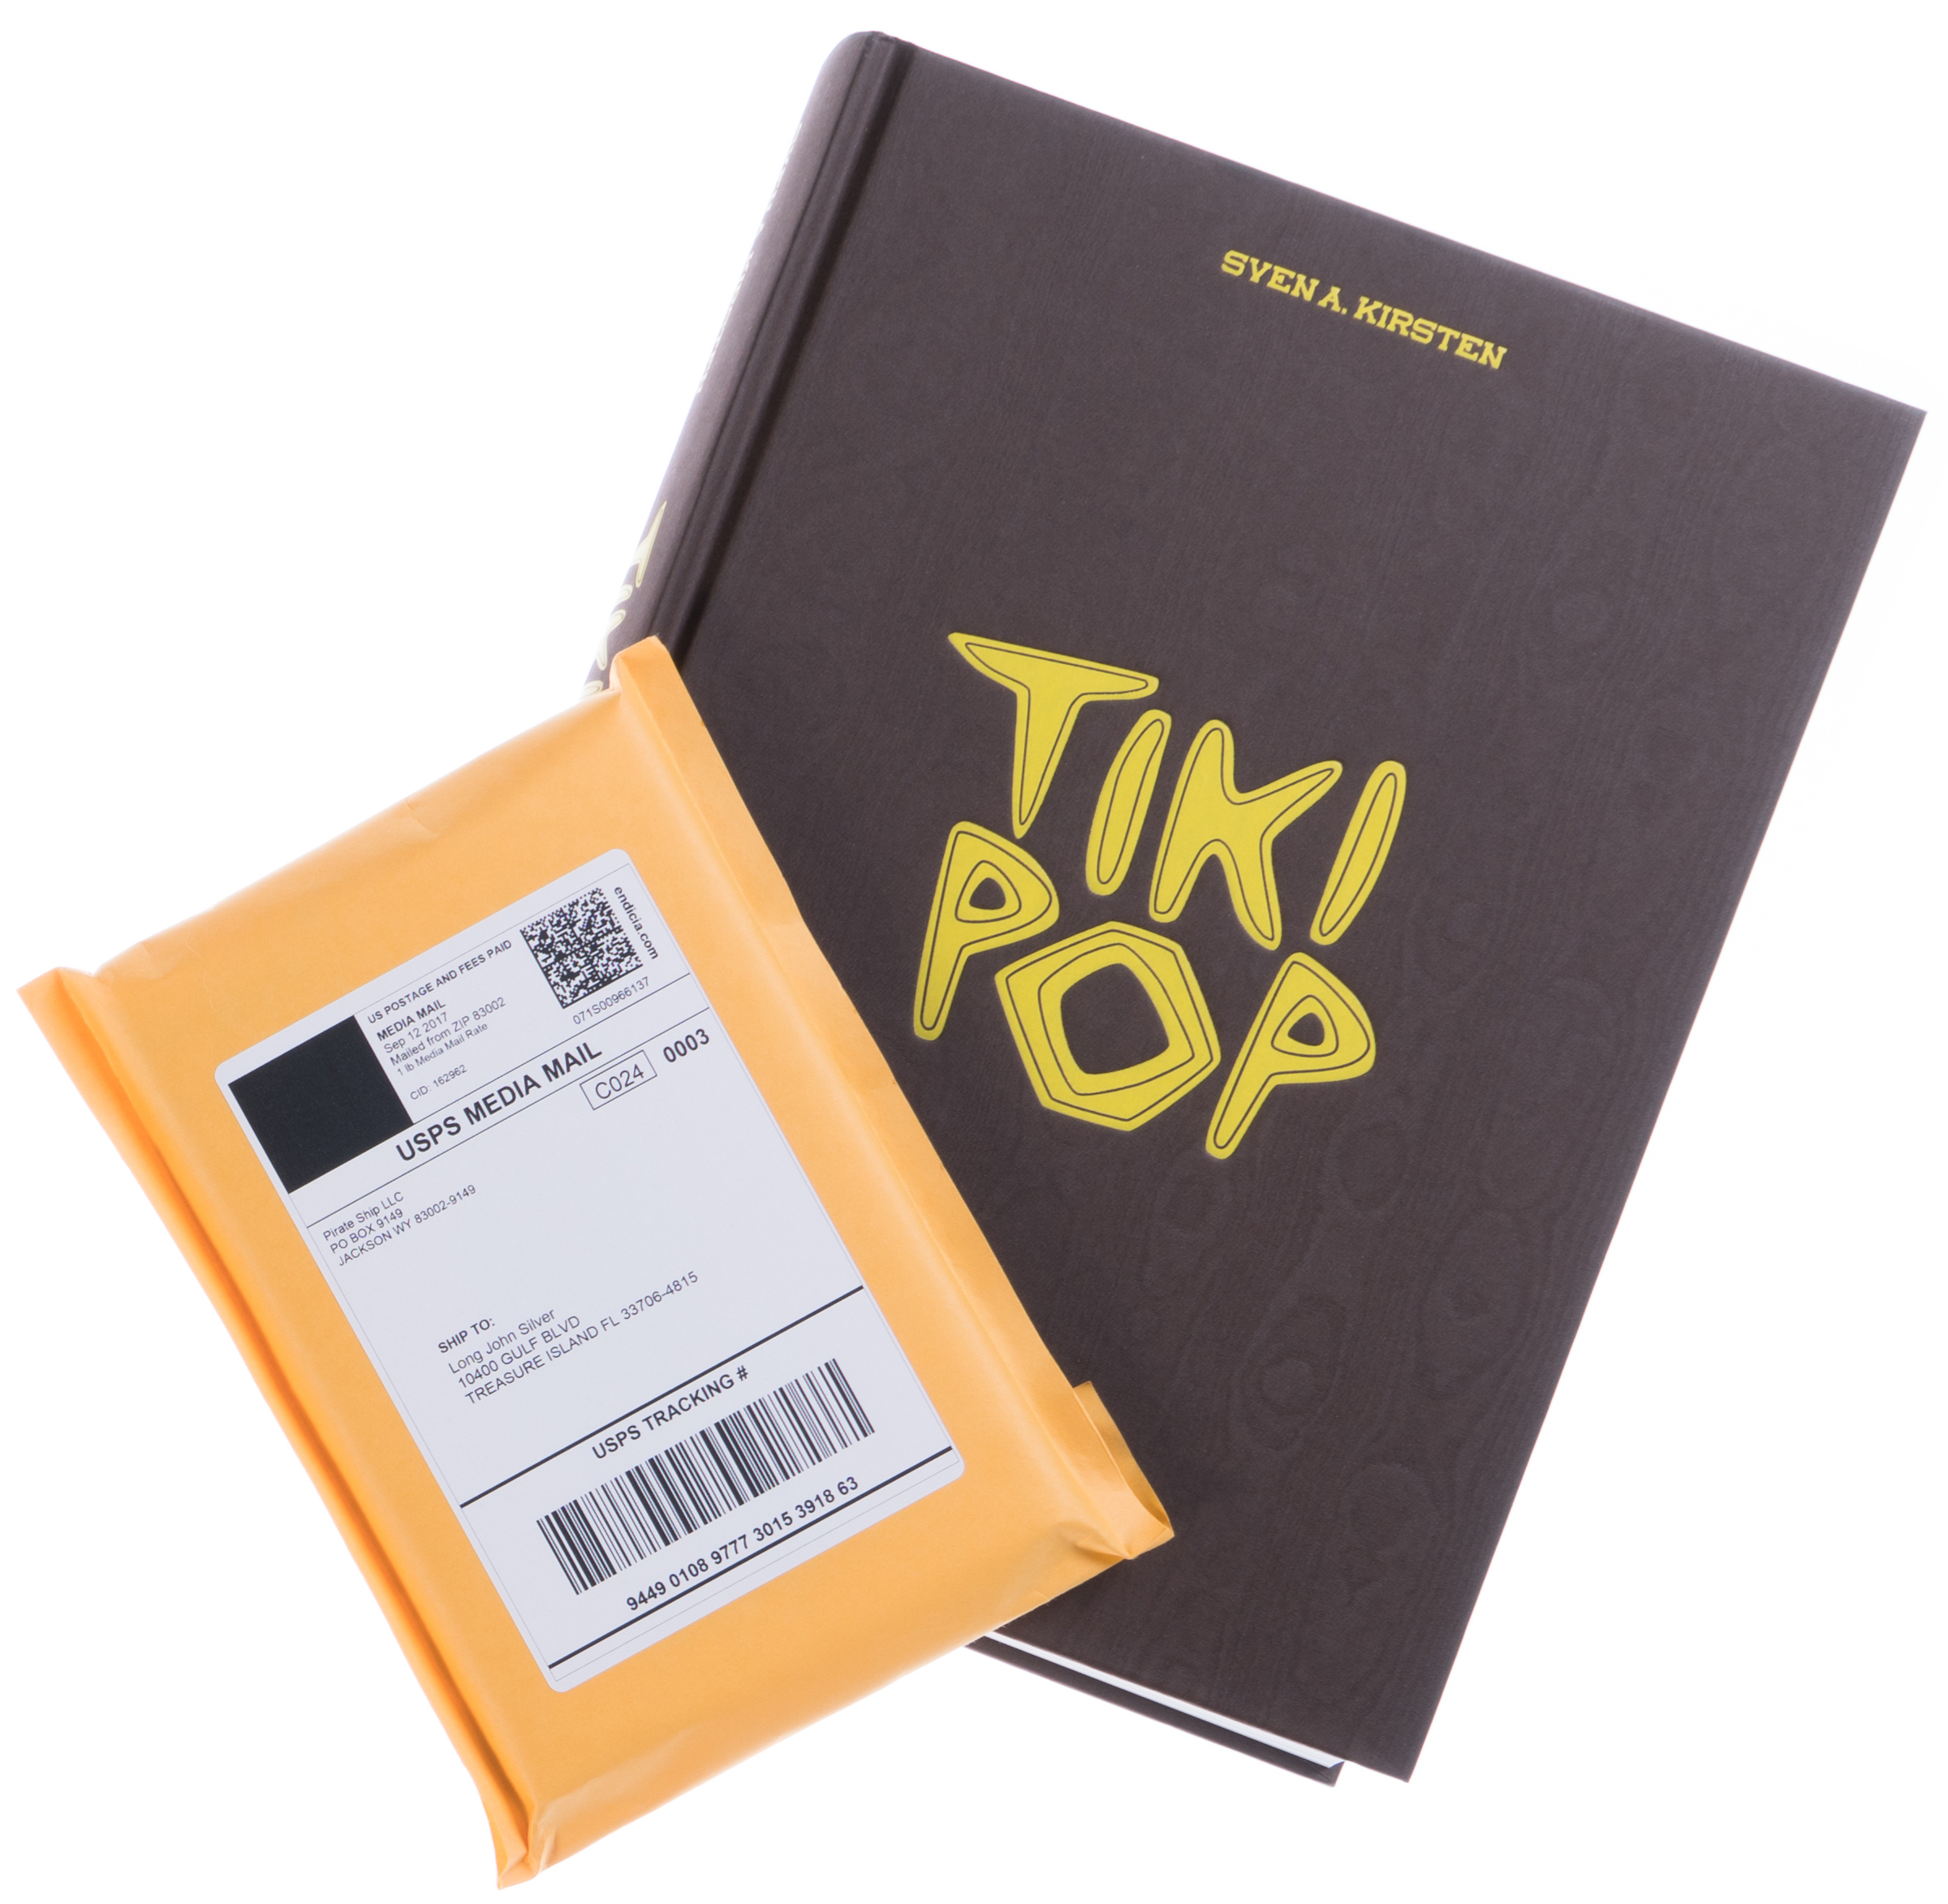 Can Comics be shipped through the USPS as Media Ra ...